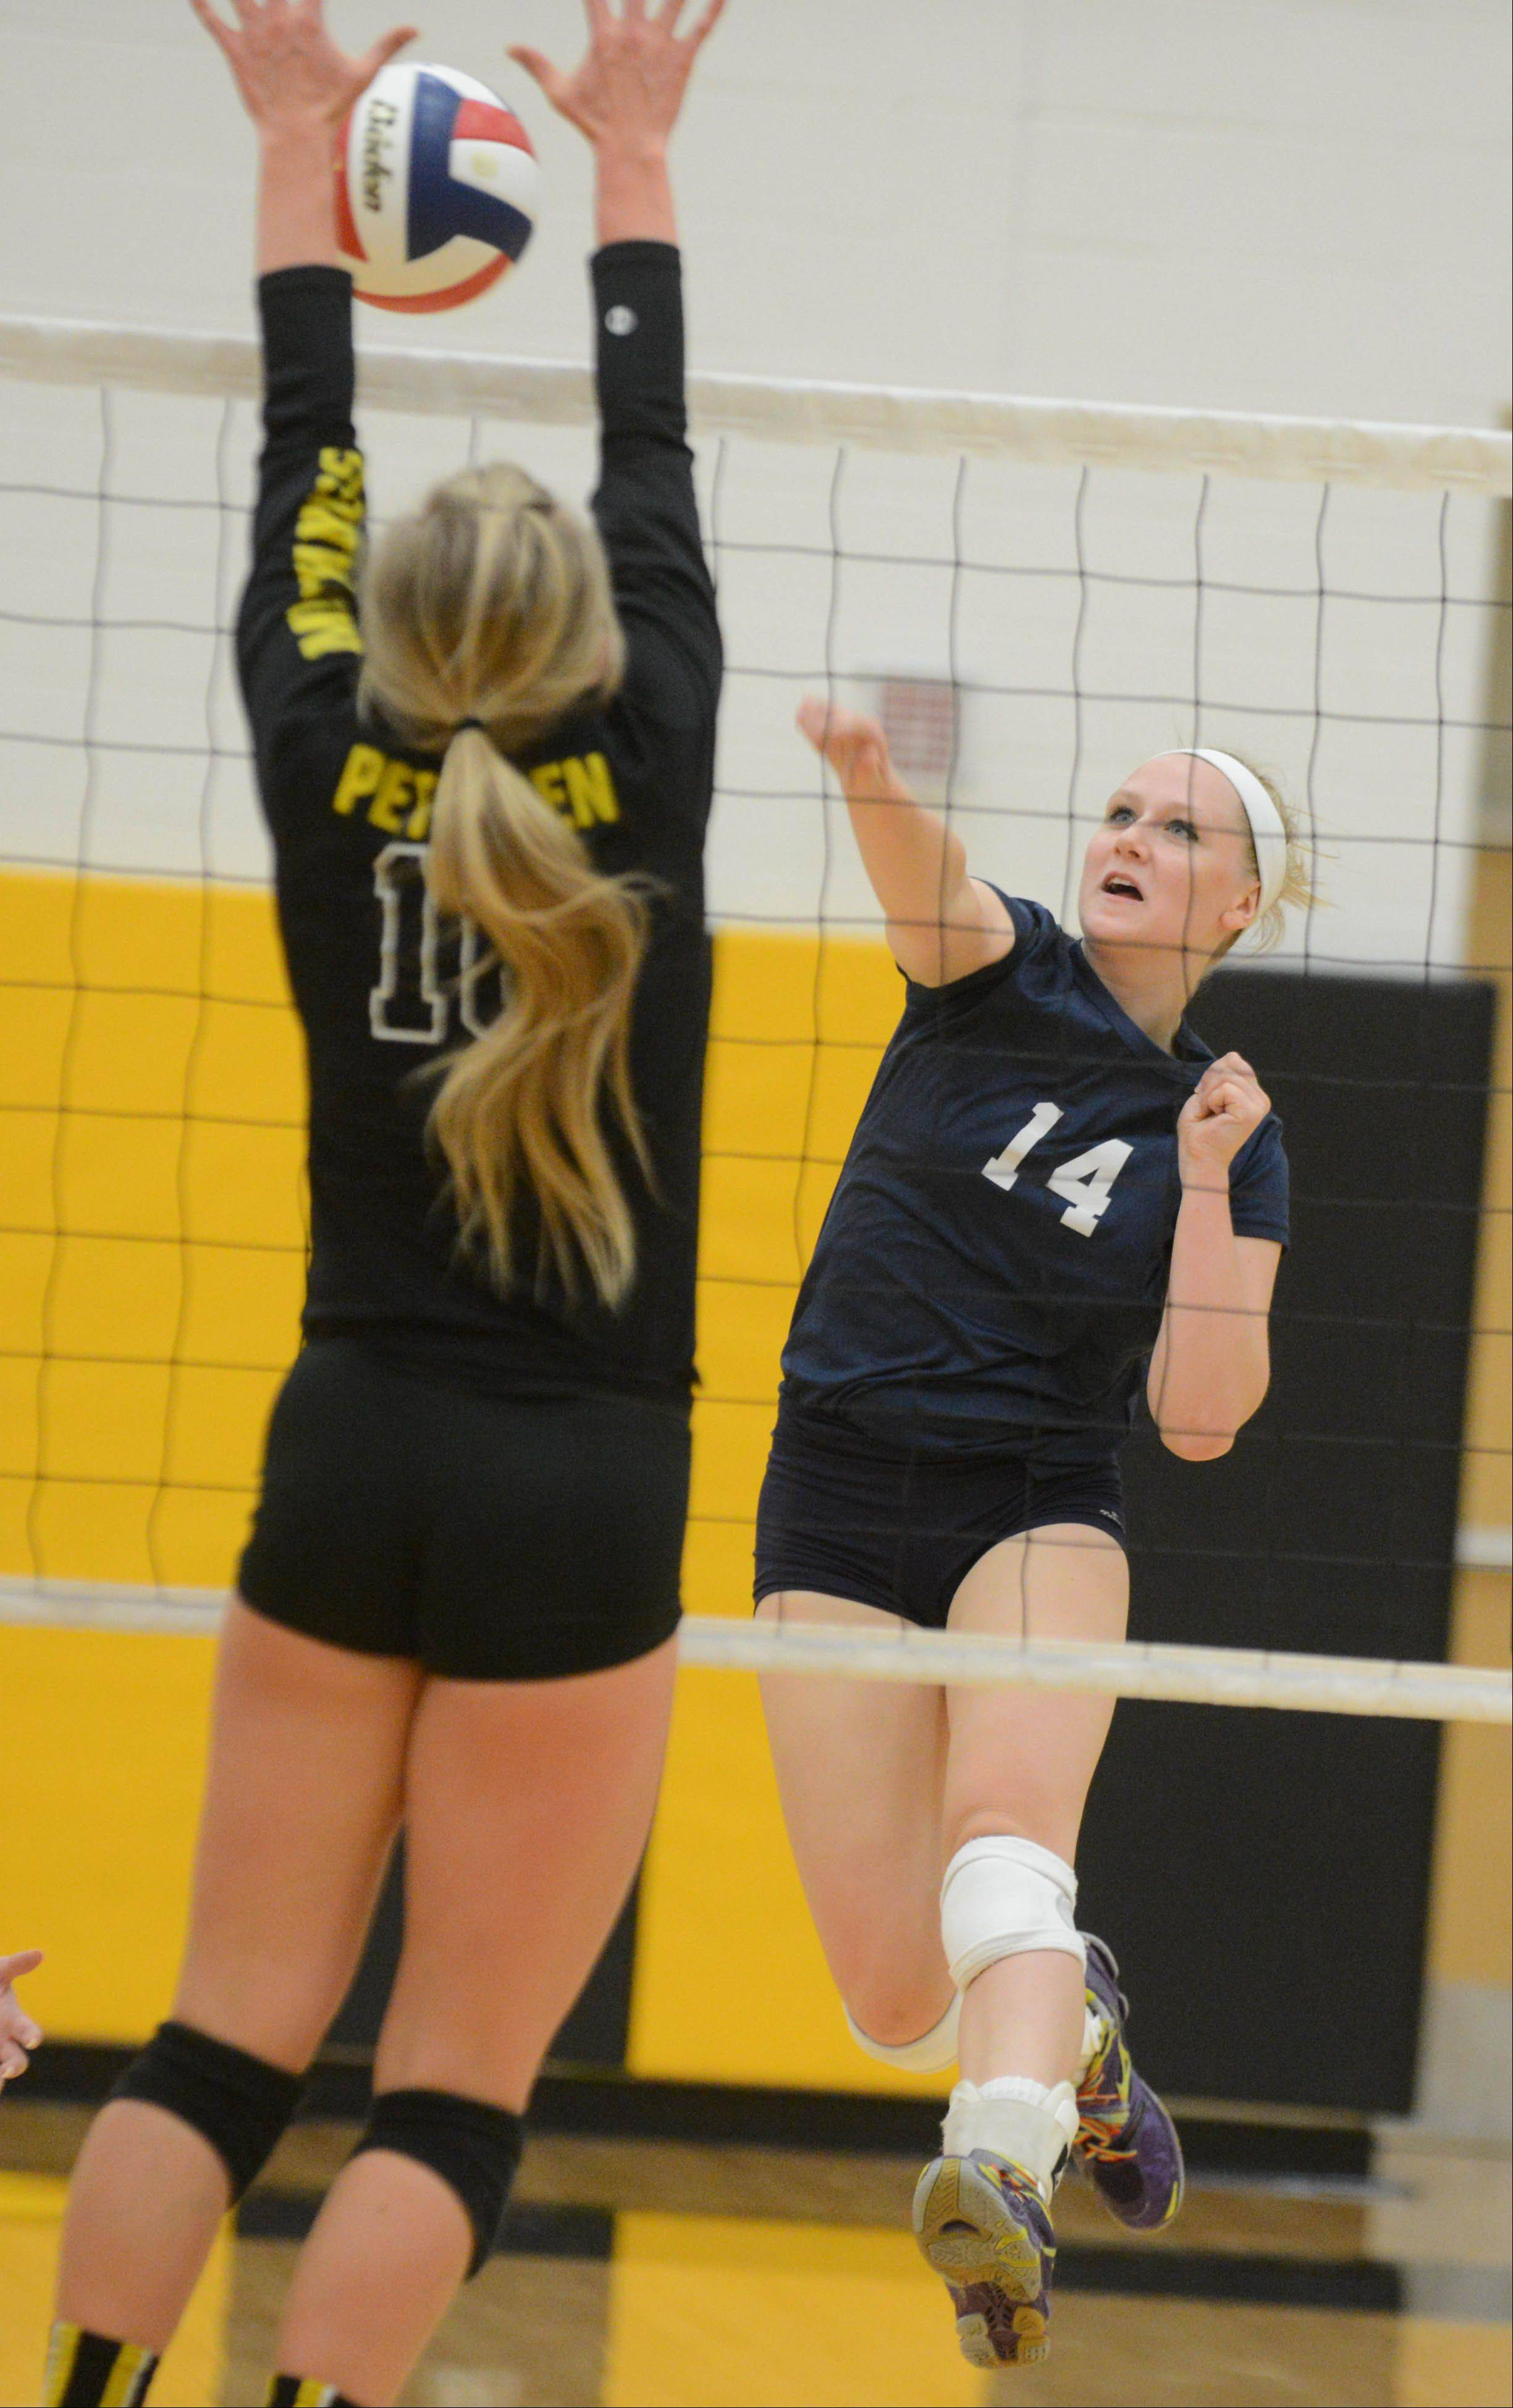 Paul Michna/pmichna@dailyherald.comRachel Hartford of Bartlett spikes the ball during the Bartlett at Metea Valley girls volleyball game Tuesday.